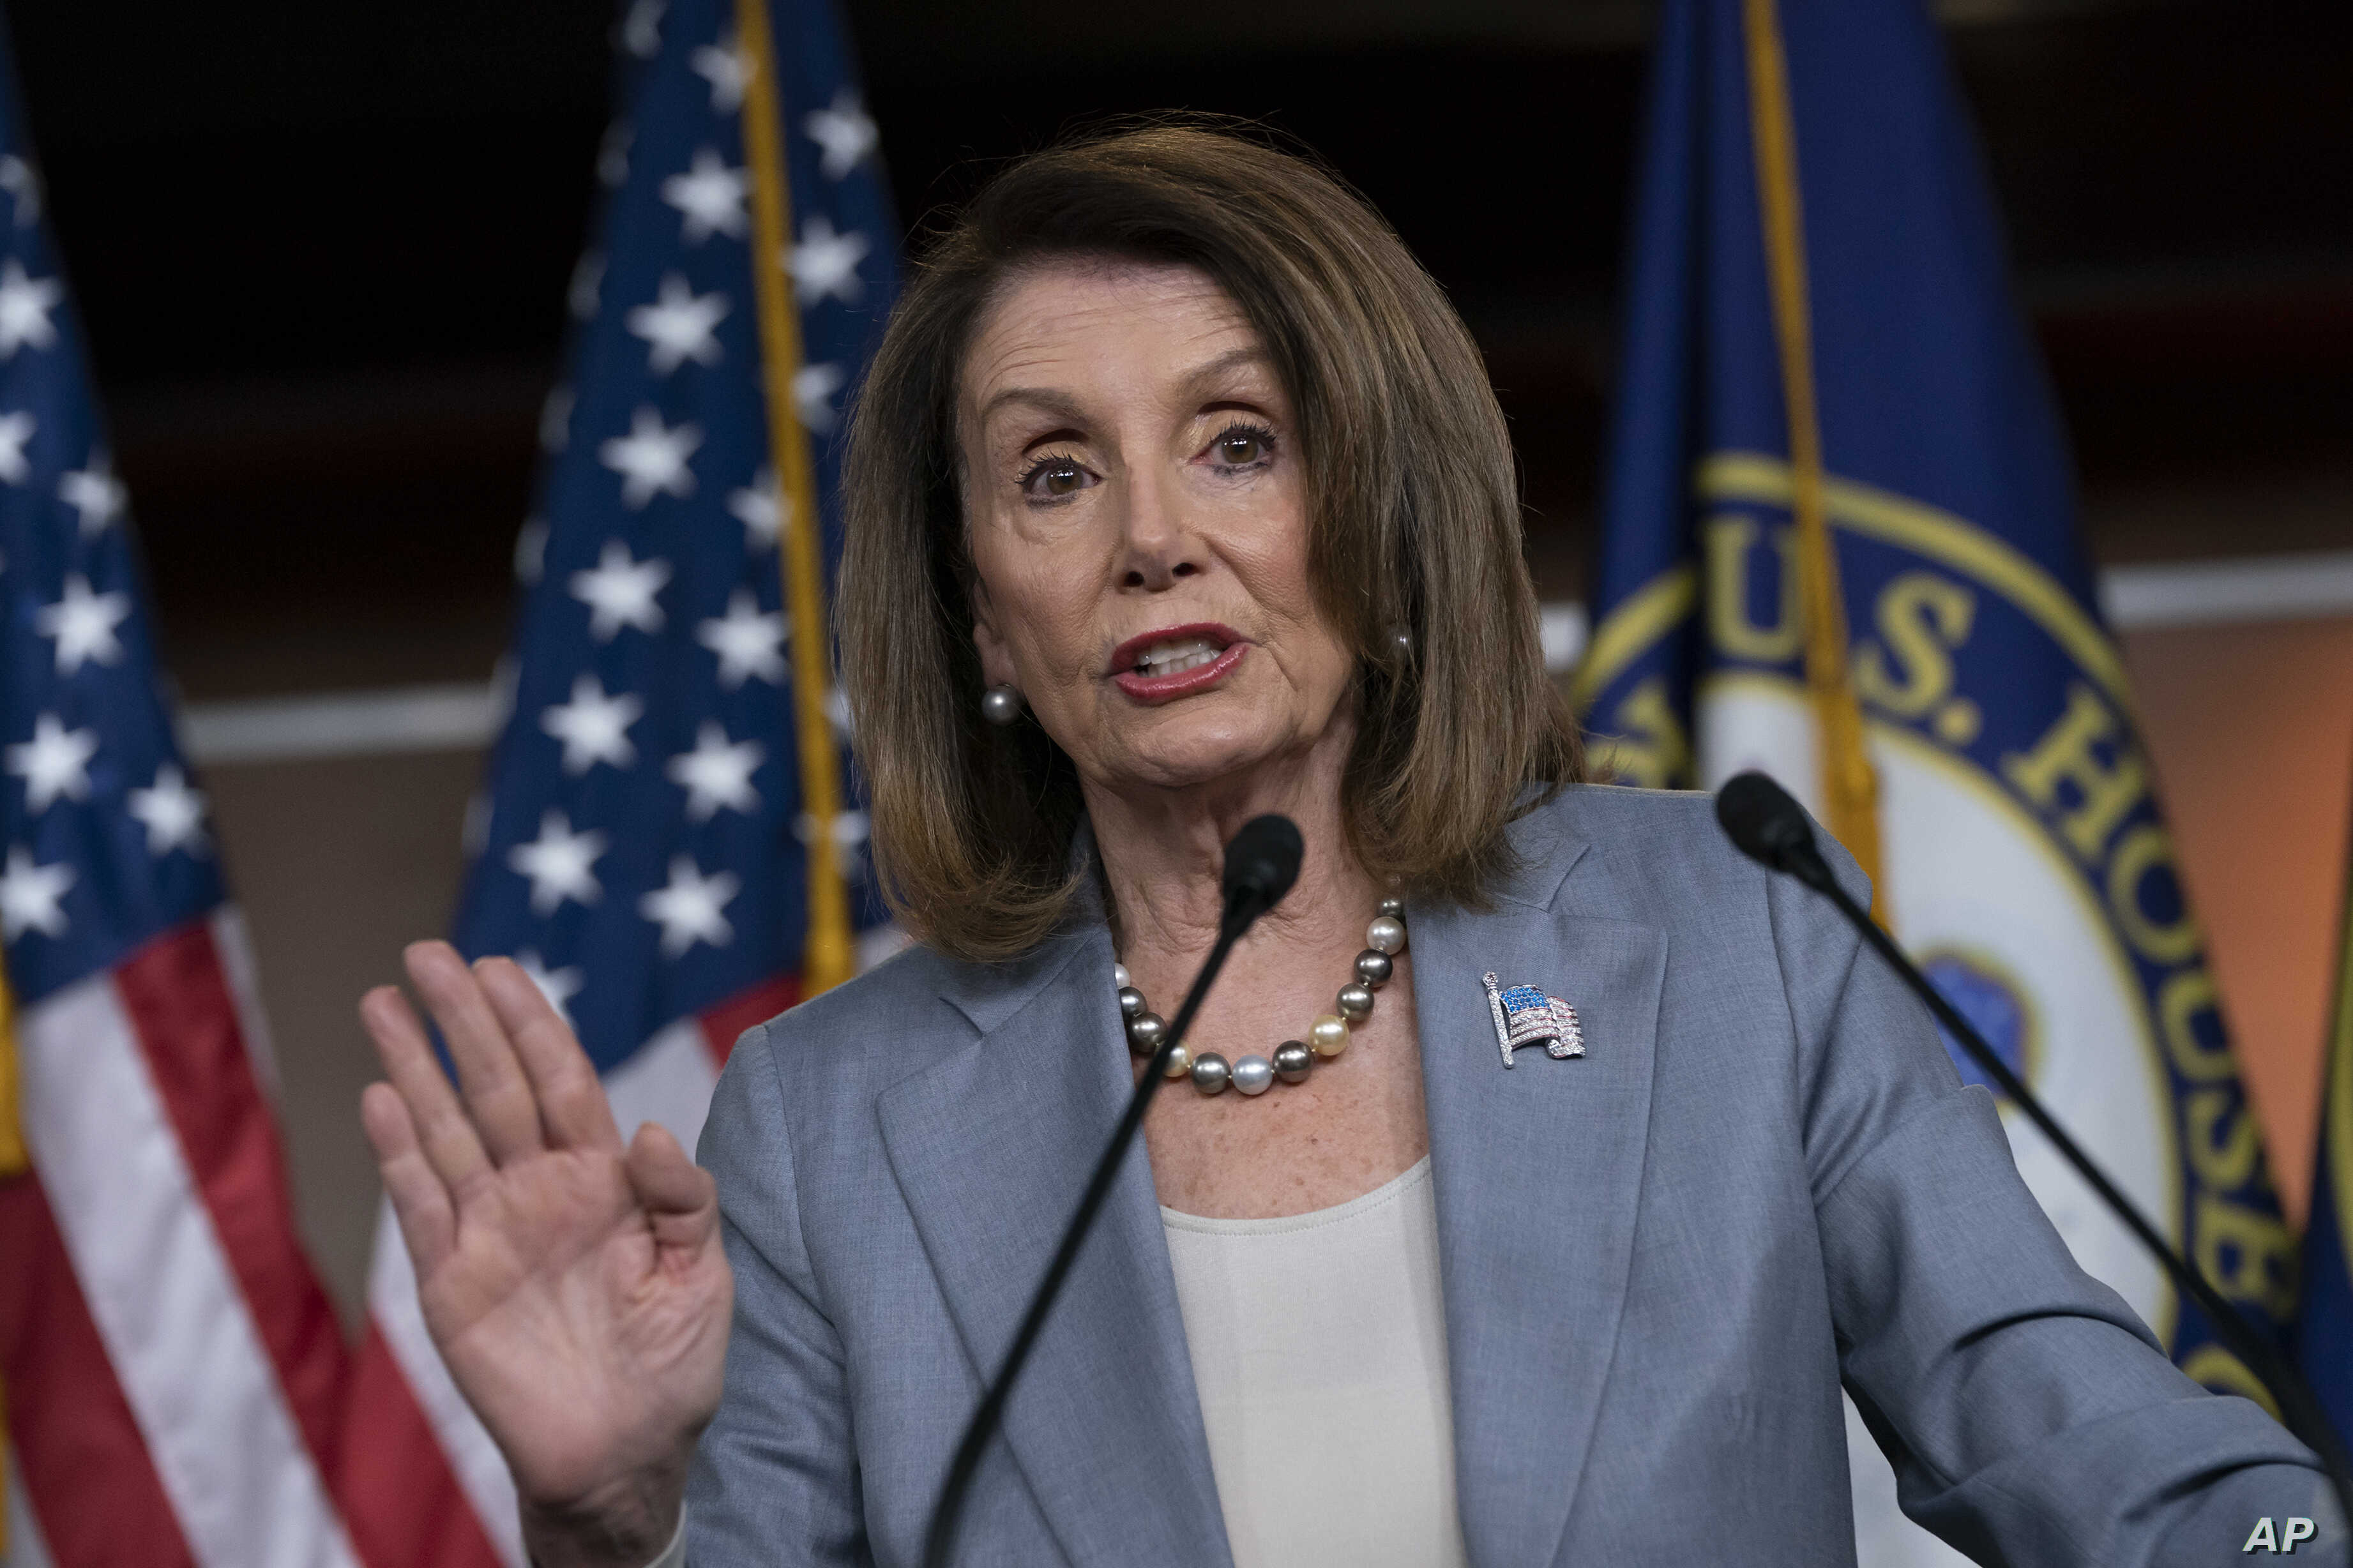 Pelosi White House Obstructing Justice Every Day Voice